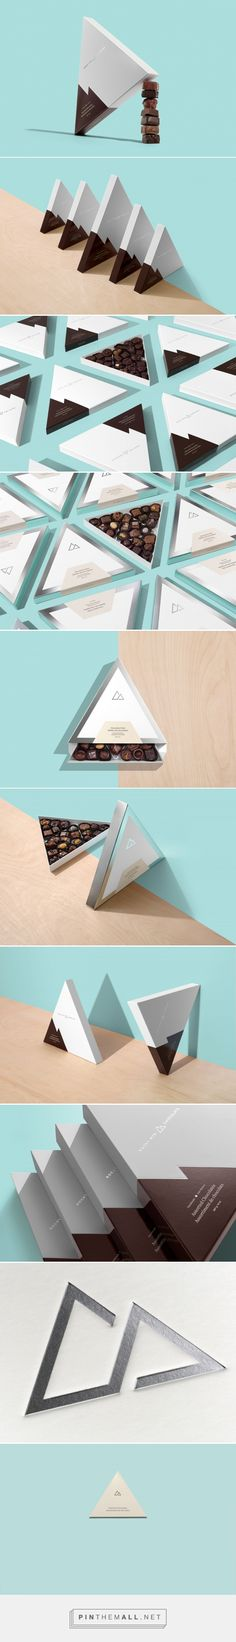 Rocky Mtn Chocolate Rebrand, design by Wedge & Lever